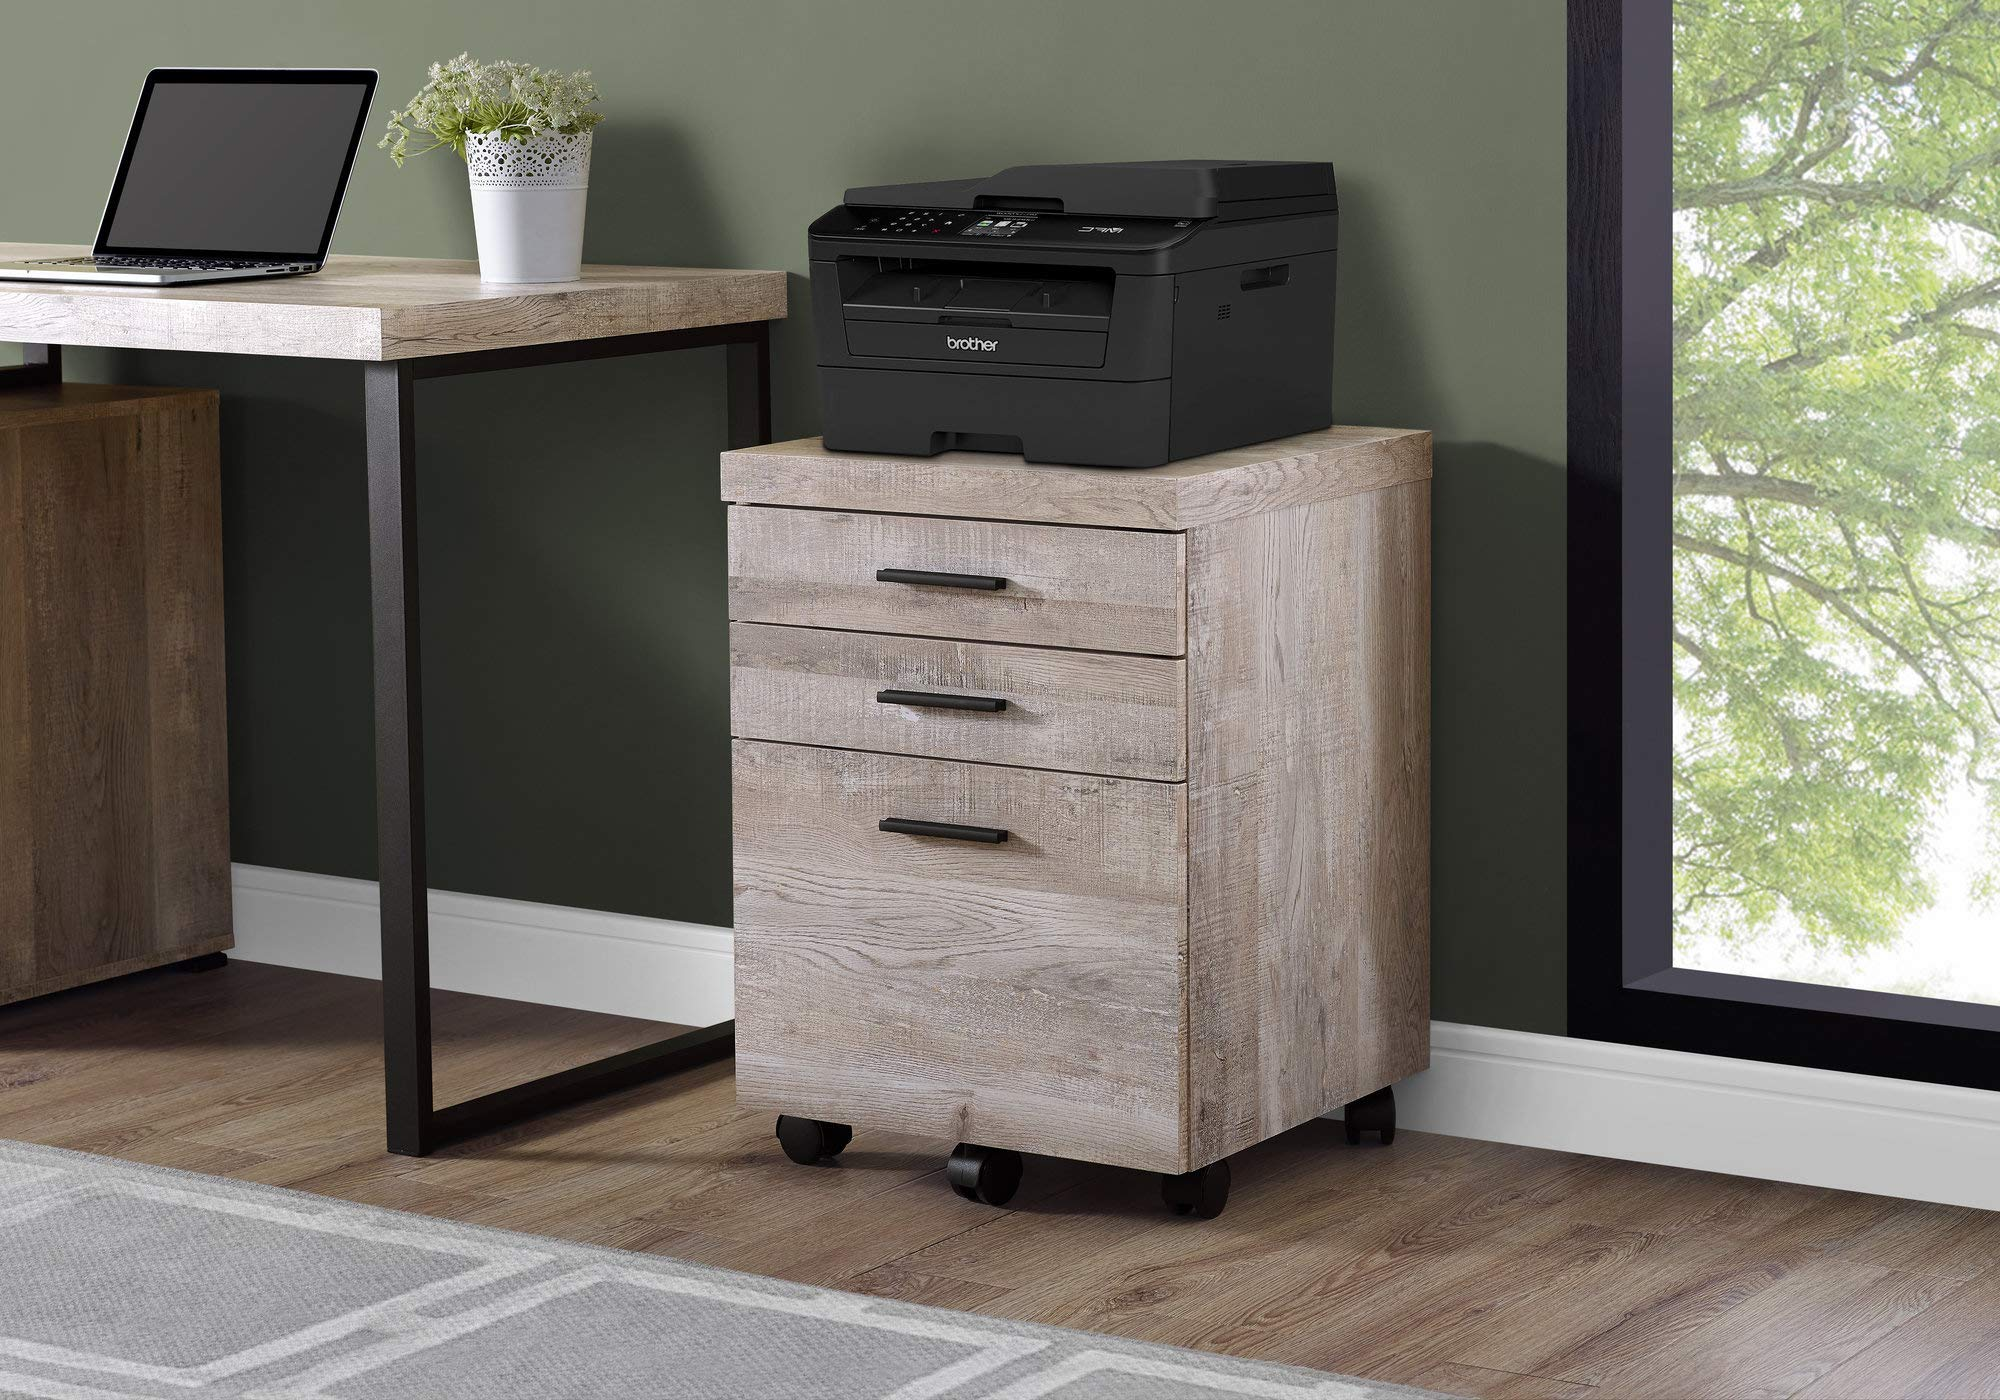 Monarch Specialties I I 7402 Filing Cabinet, Taupe